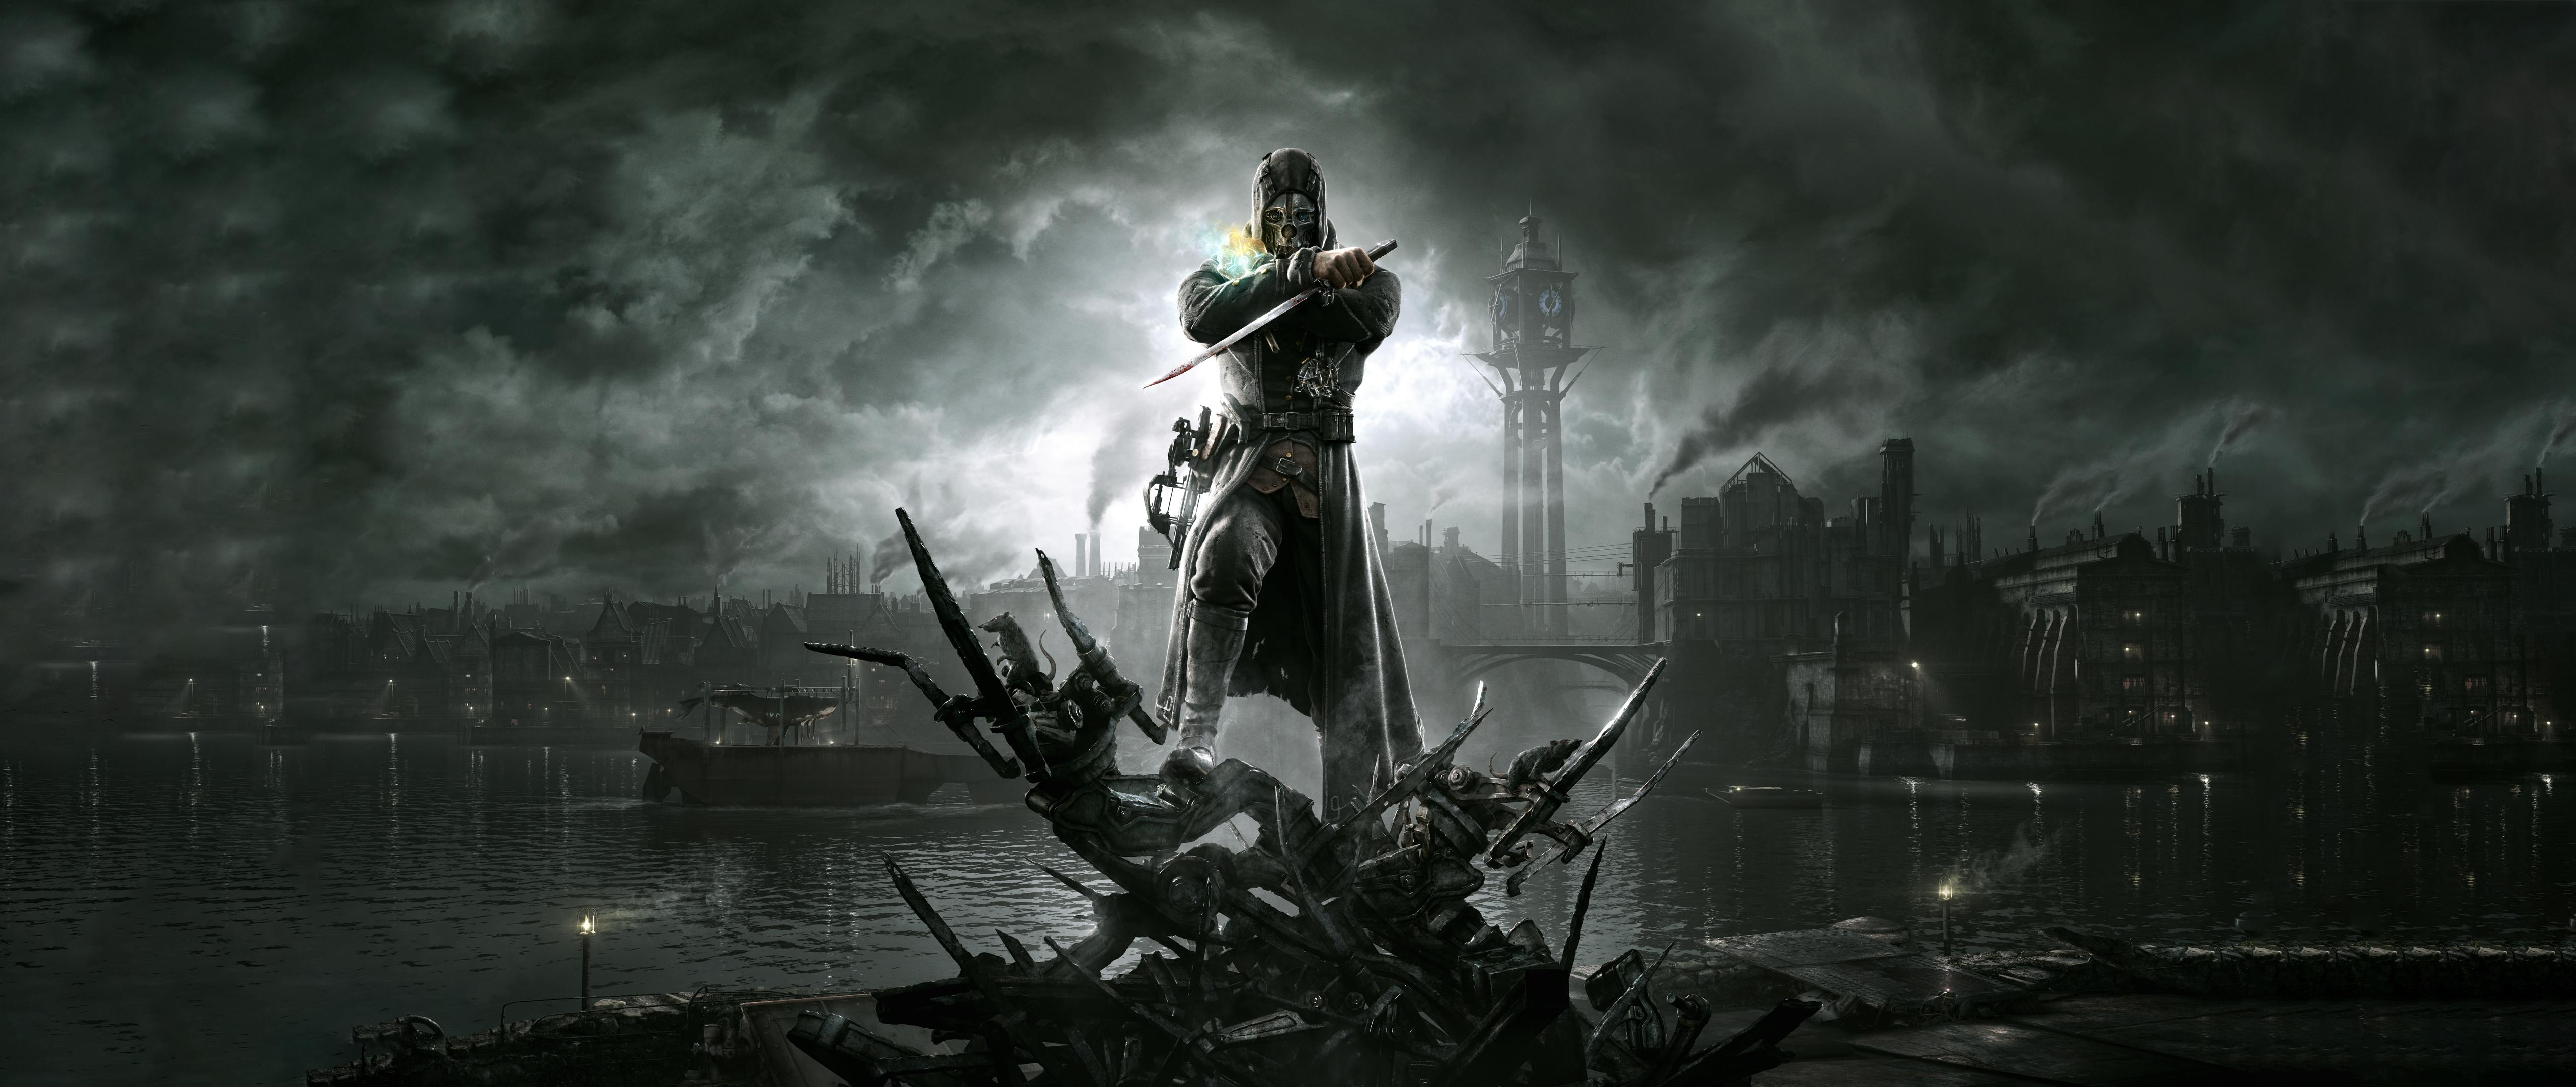 Dishonored 5k hd games 4k wallpapers images - Gaming wallpaper ...